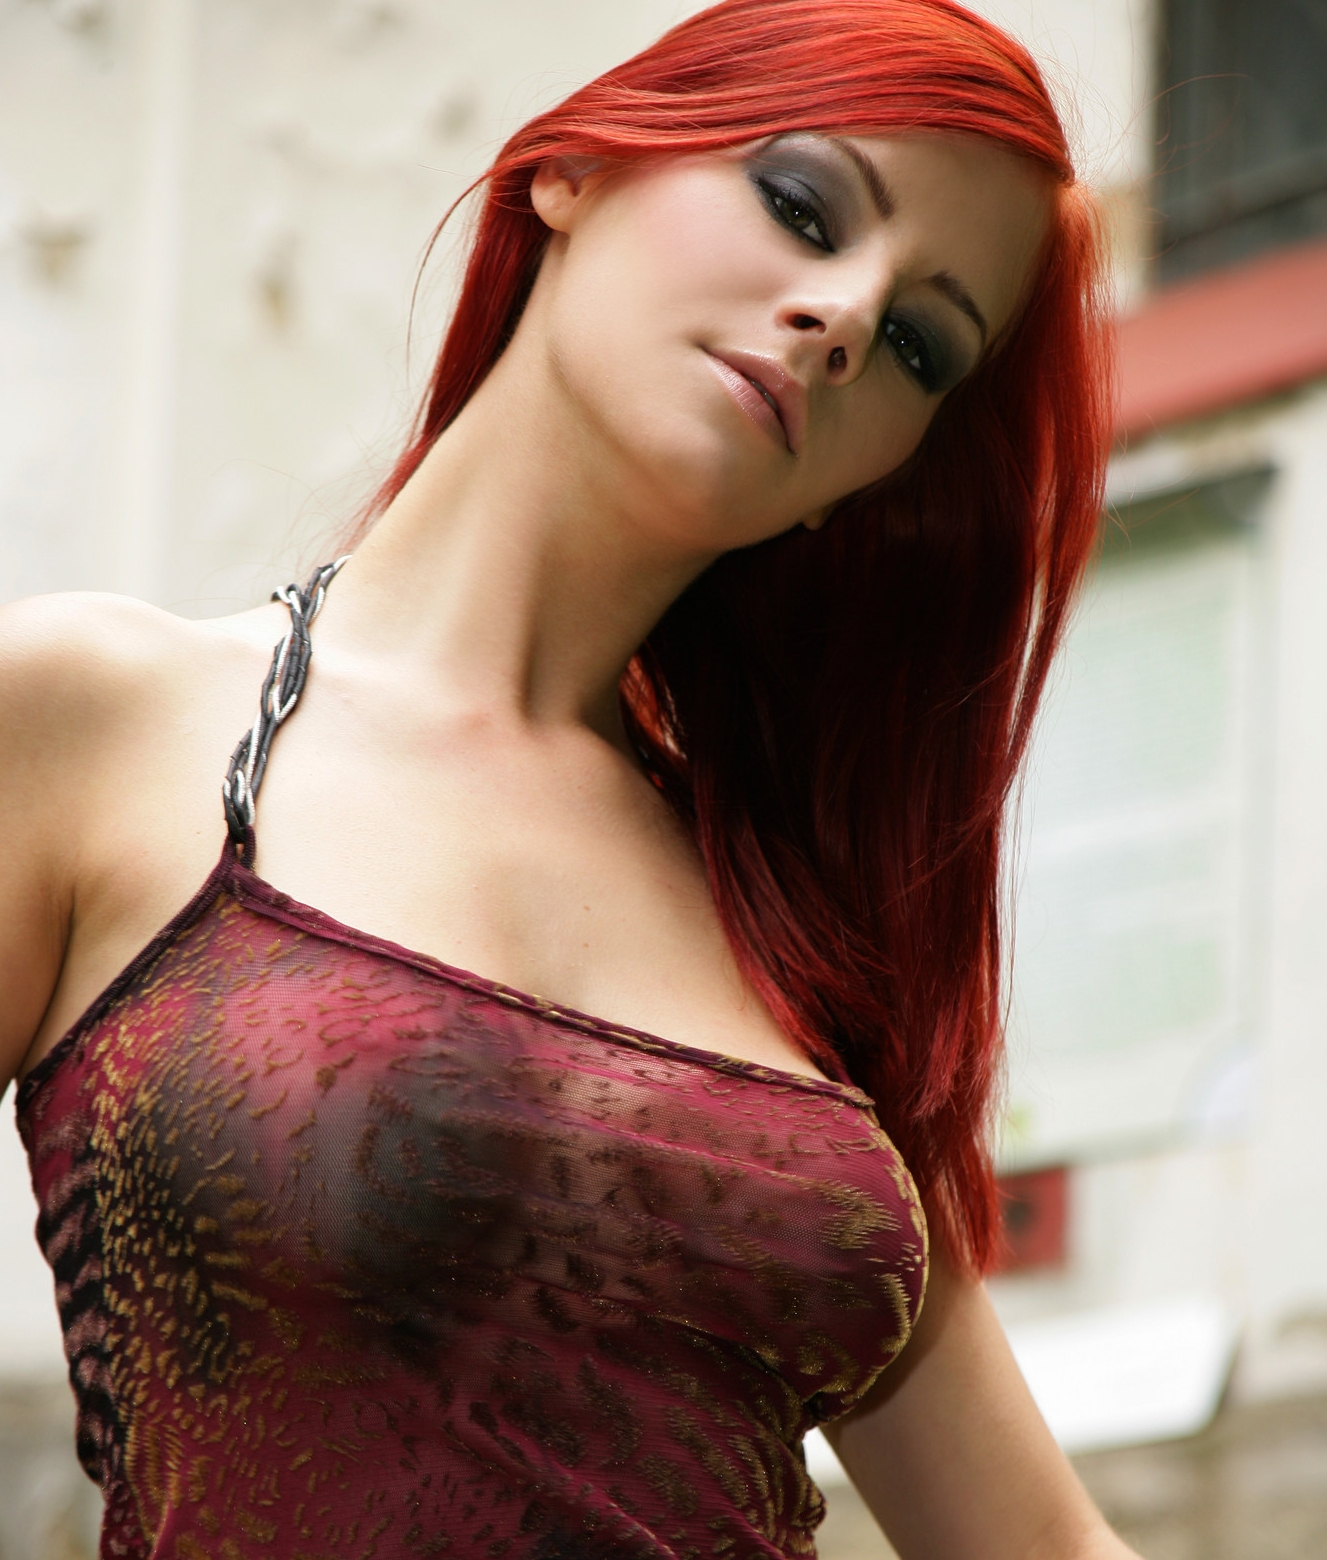 Flash porn bisexual woman red head